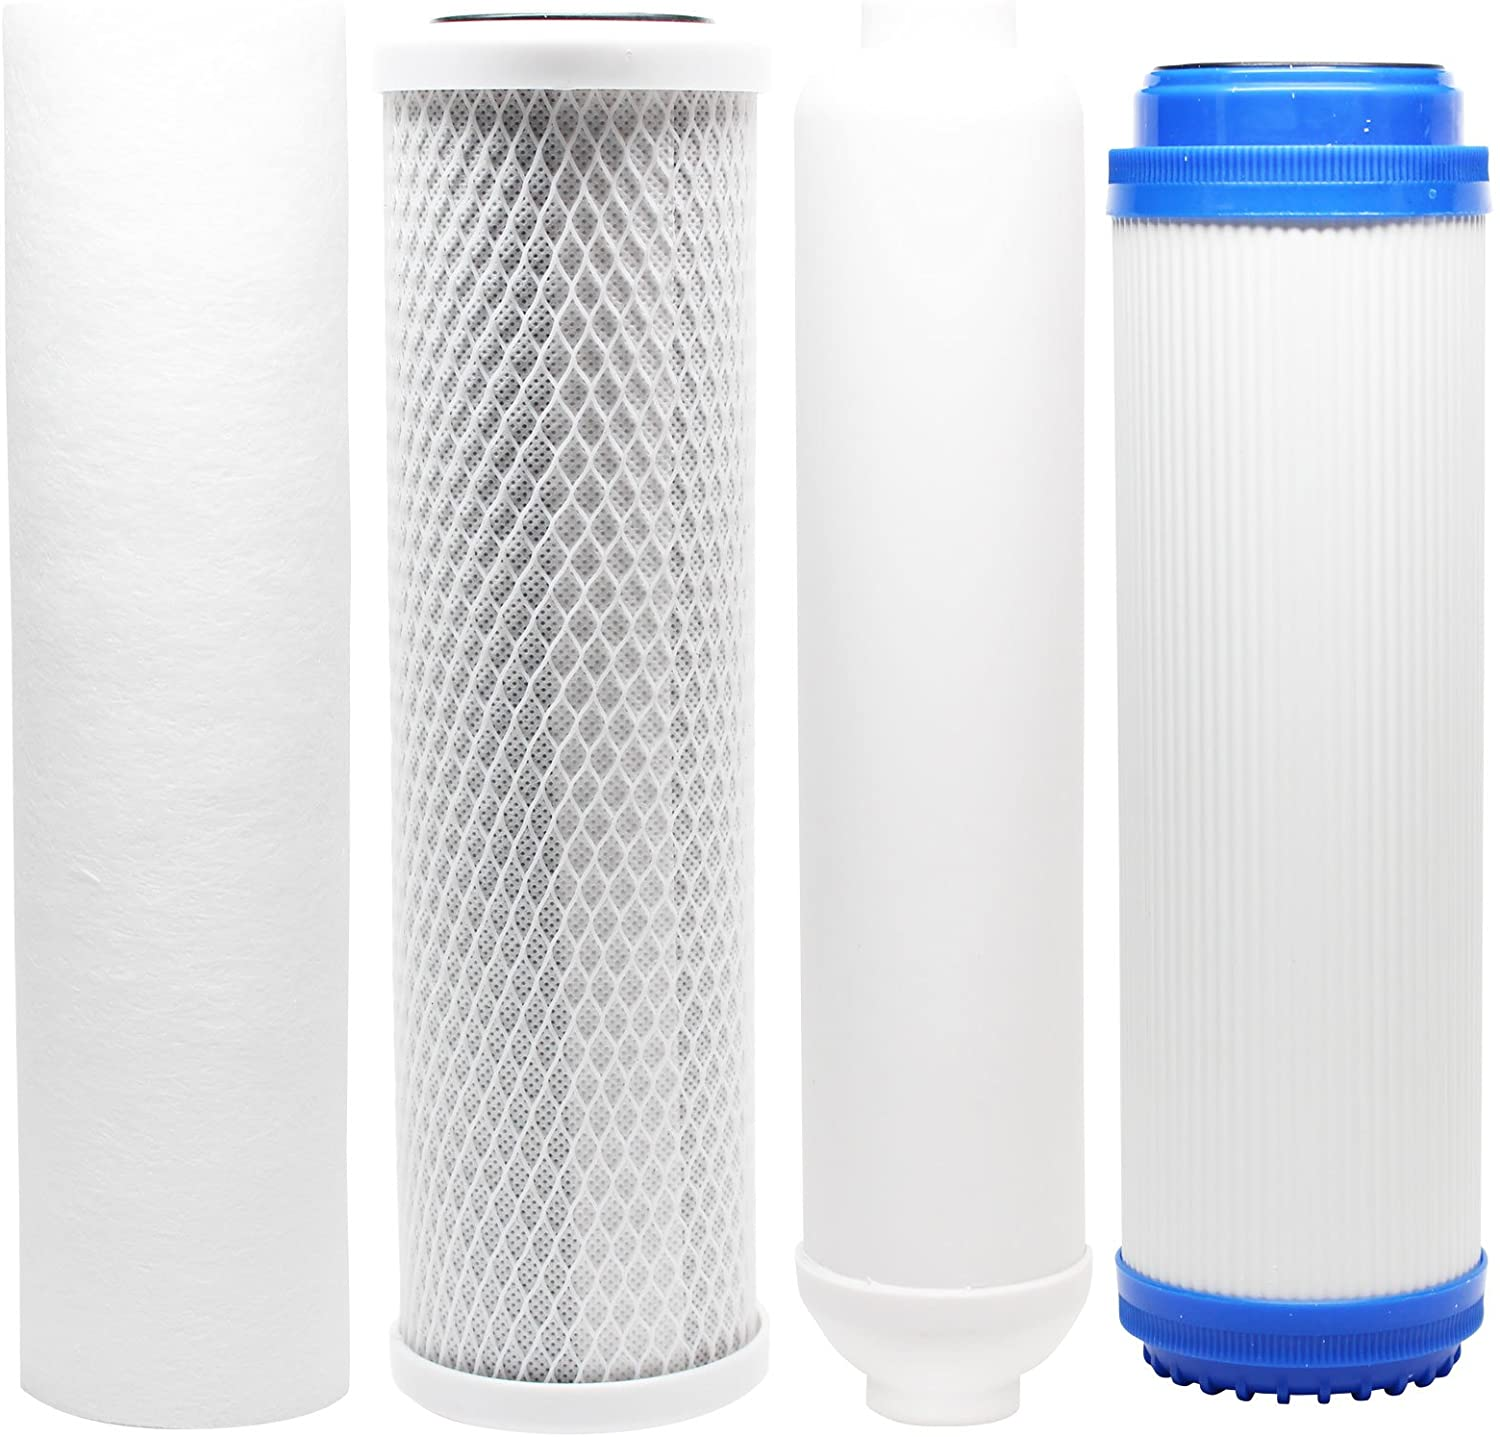 Replacement Filter Kit Compatible with Expres Water RO10MXG RO System - Includes Carbon Block Filter, PP Sediment Filter, GAC Filter & Inline Filter Cartridge - Denali Pure Brand